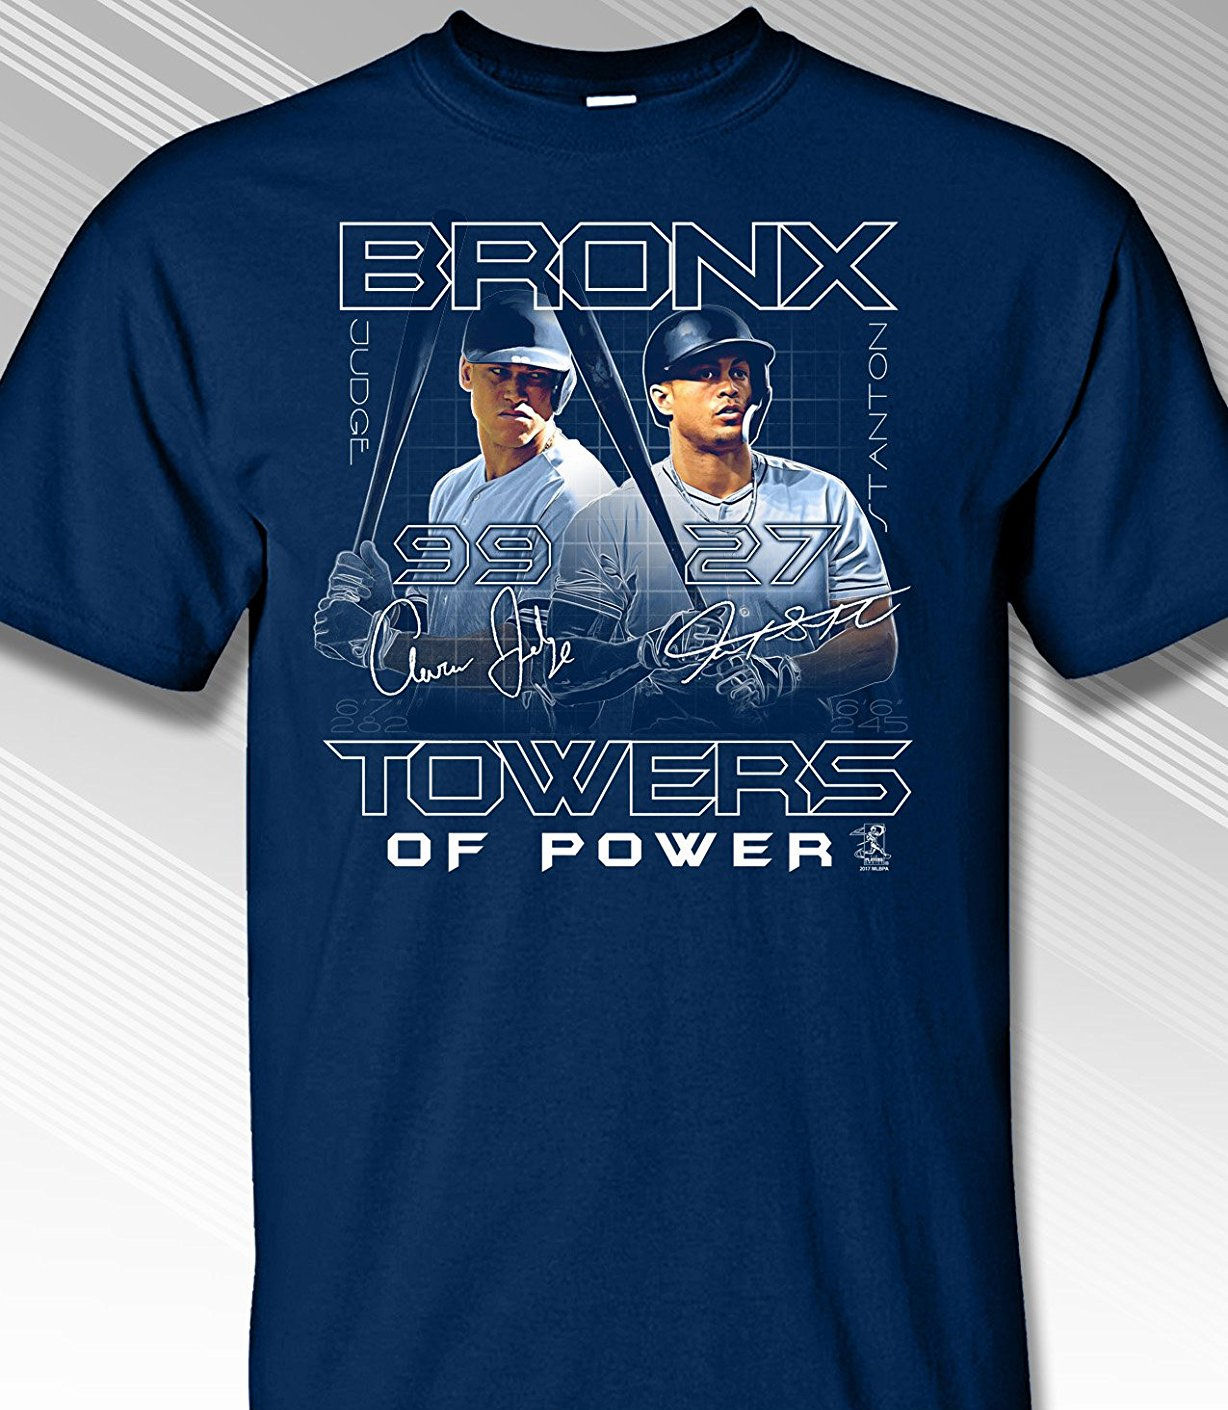 Aaron Judge and Giancarlo Stanton New York Bronx Towers of Power T-Shirt<br>Short or Long Sleeve<br>Youth Med to Adult 4X